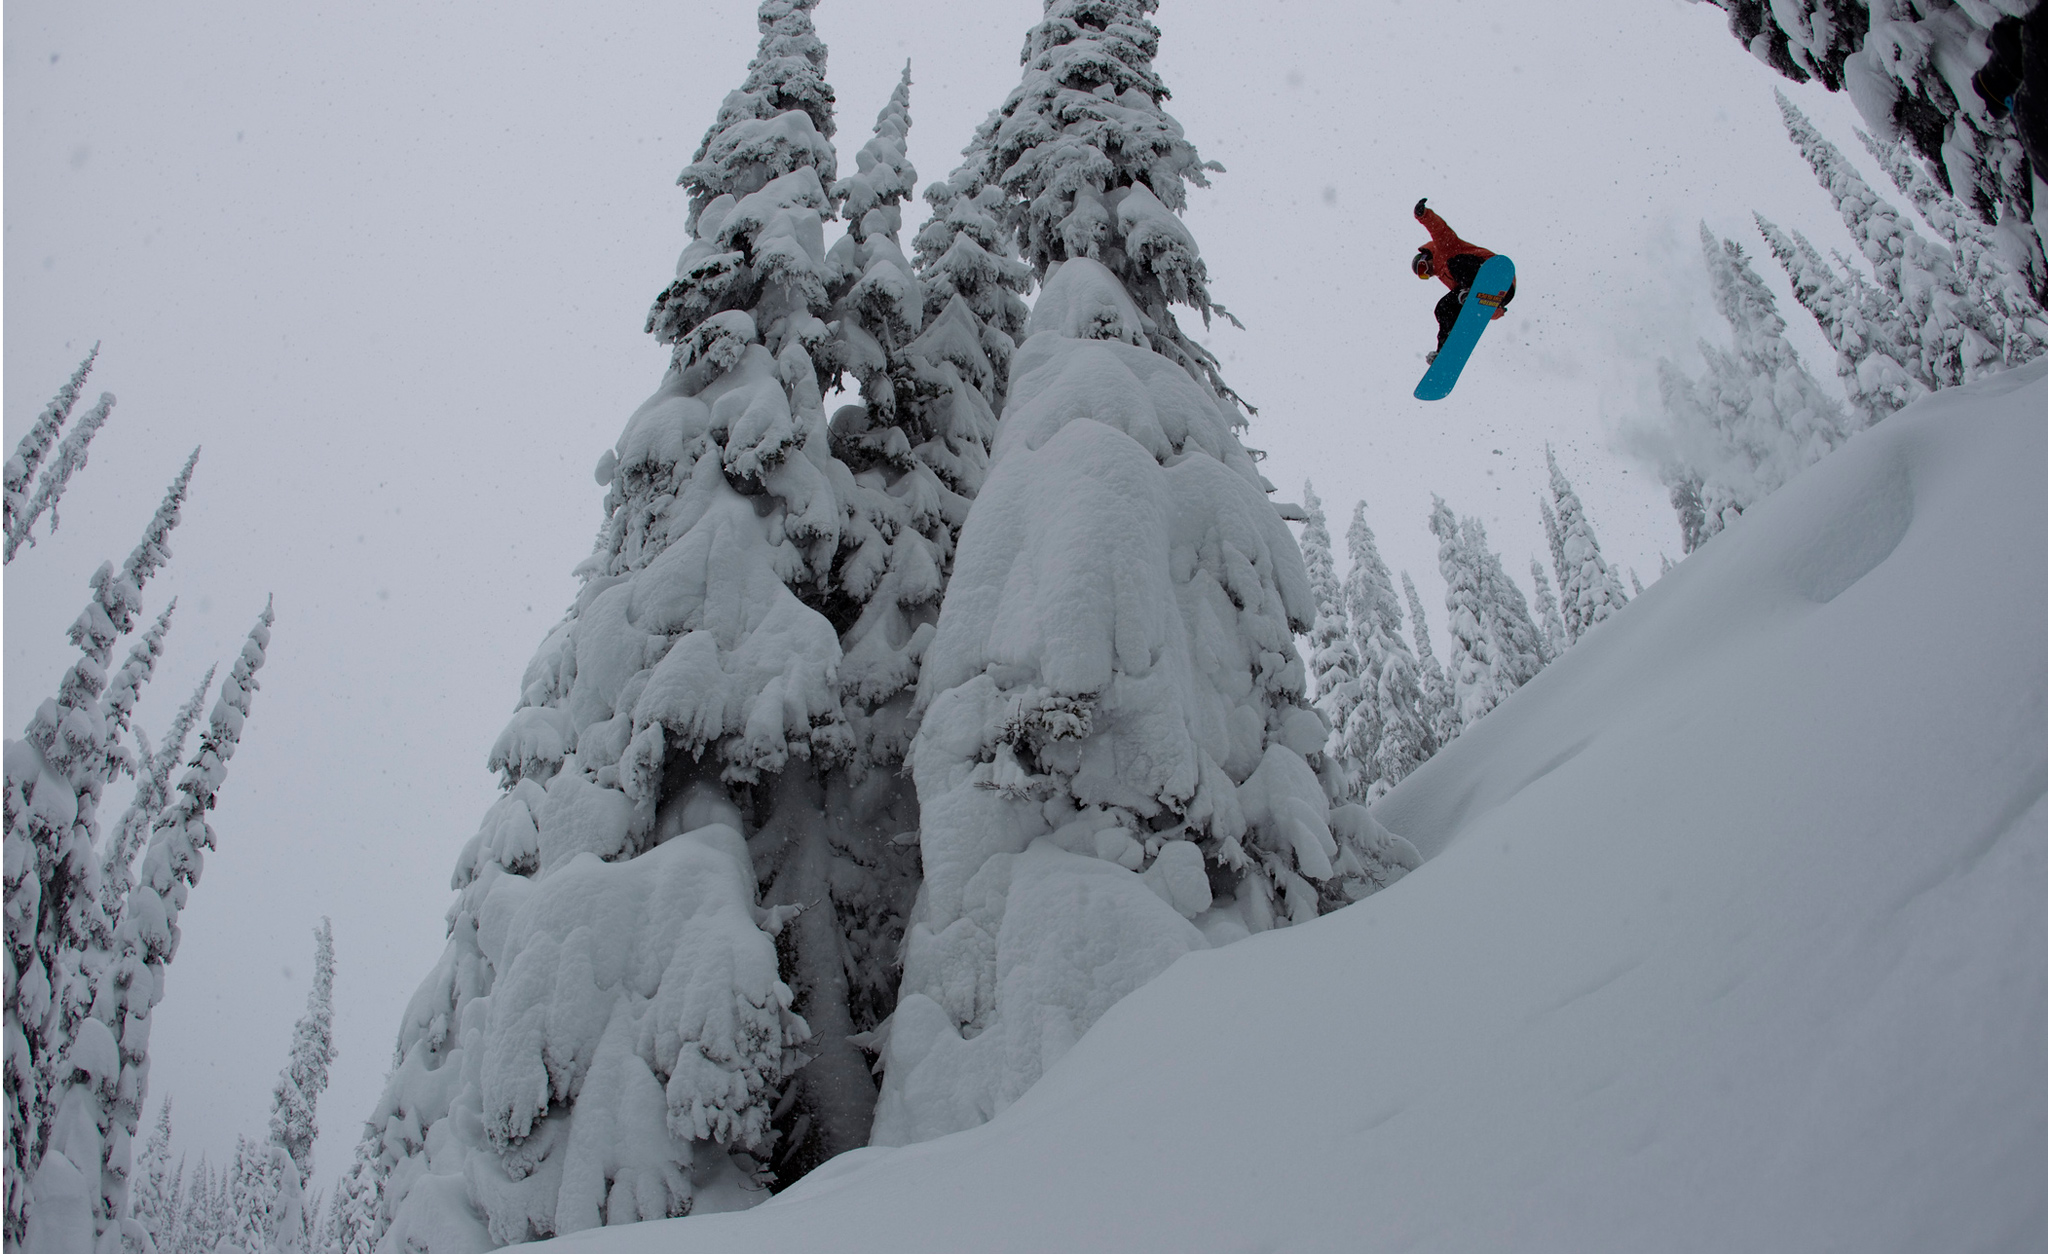 Mikey Rencz, Real Snow Backcountry